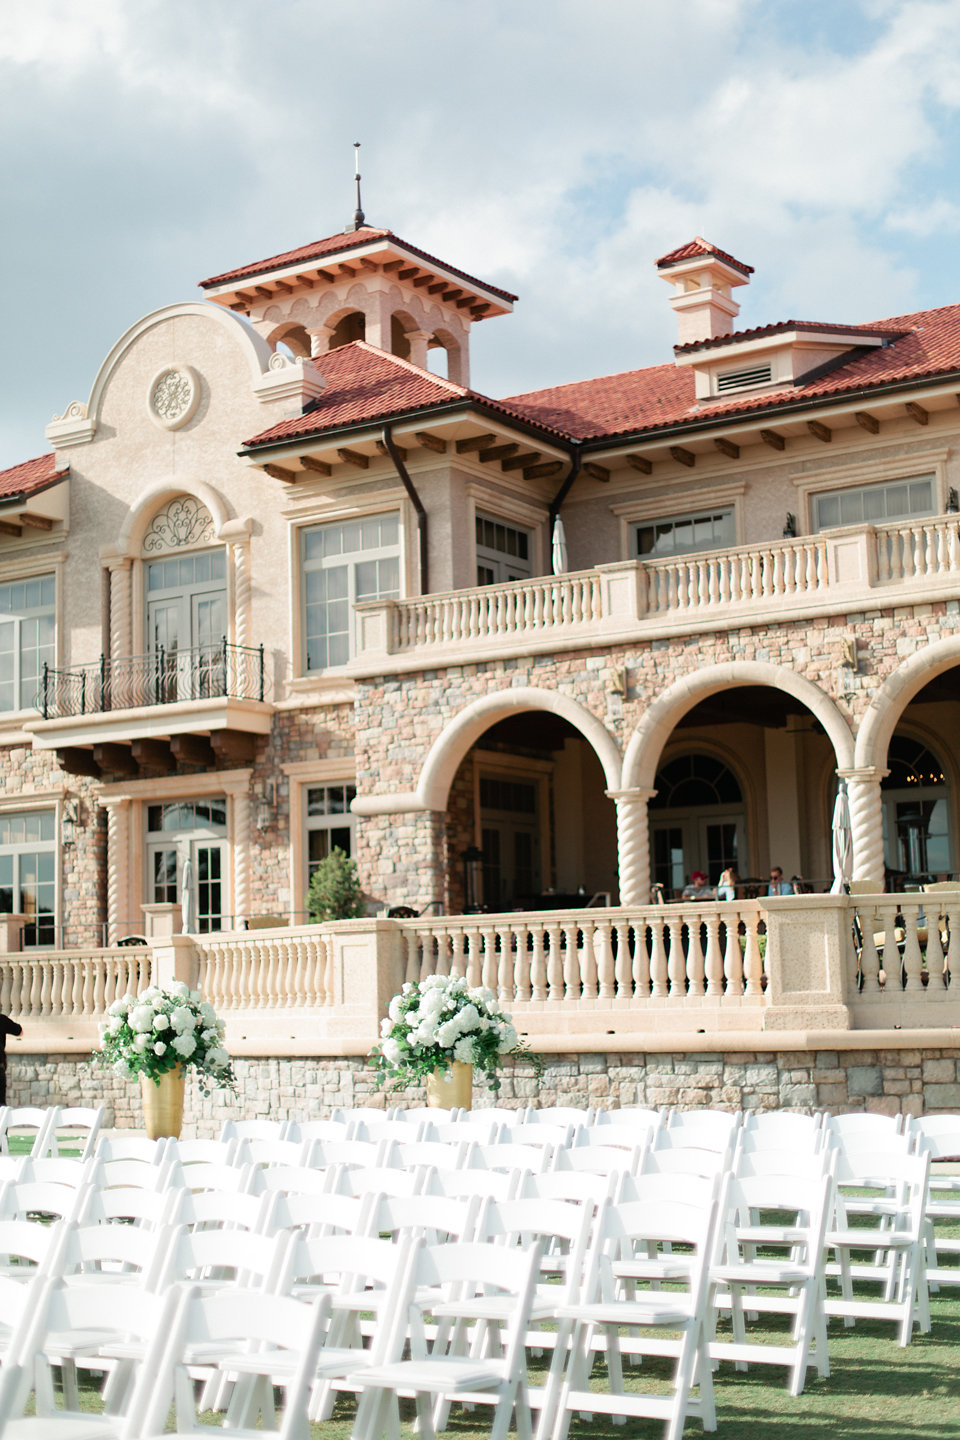 TPC Sawgrass ceremony overlooking the clubhouse and golf course  Blush Wedding at TPC Sawgrass Wedding Ponte Vedra Beach  Jacksonville Wedding Planner Blue Ribbon Weddings  Jacksonville Wedding Photographer Debra Eby Photography  Wedding Ceremony & Reception at TPC Sawgrass Jacksonville